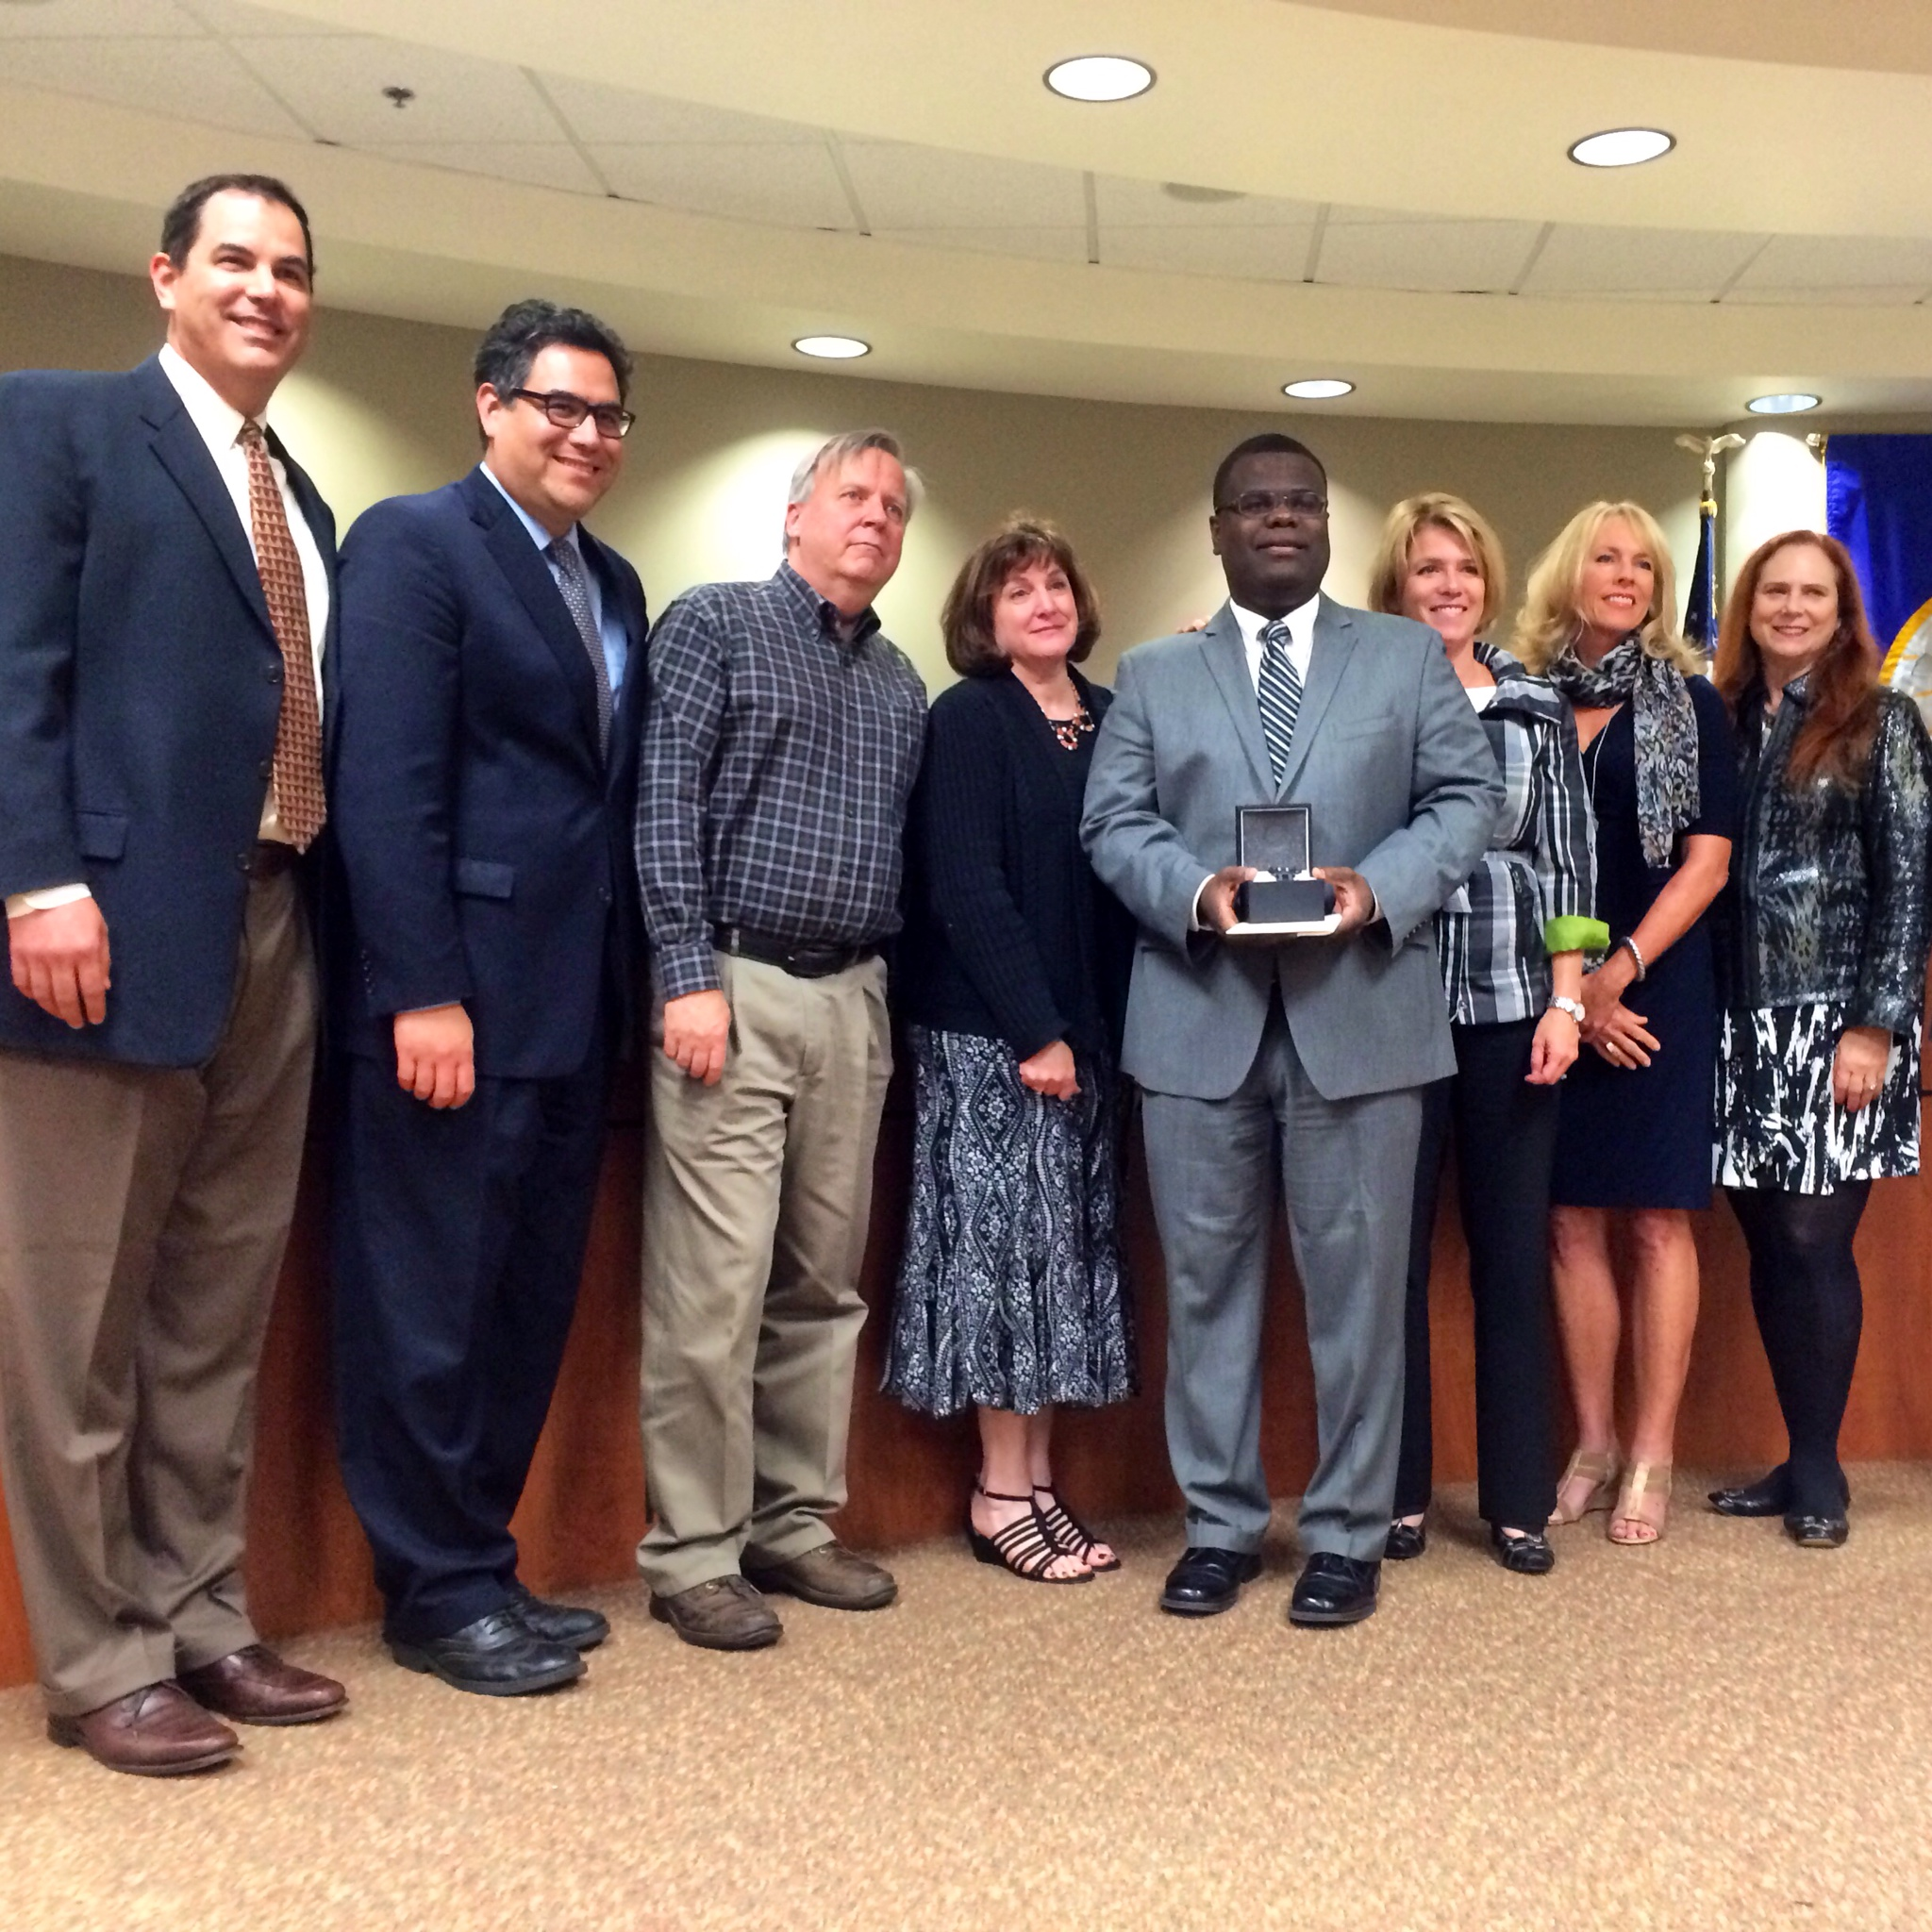 Members of the Capistrano Unified School District Board of Trustees each pitched in to buy outgoing Chief Communications Officer Marcus Walton a watch. Walton has accepted the communications director position at the West Contra Costa Unified School District in Northern California. Photo by Brian Park